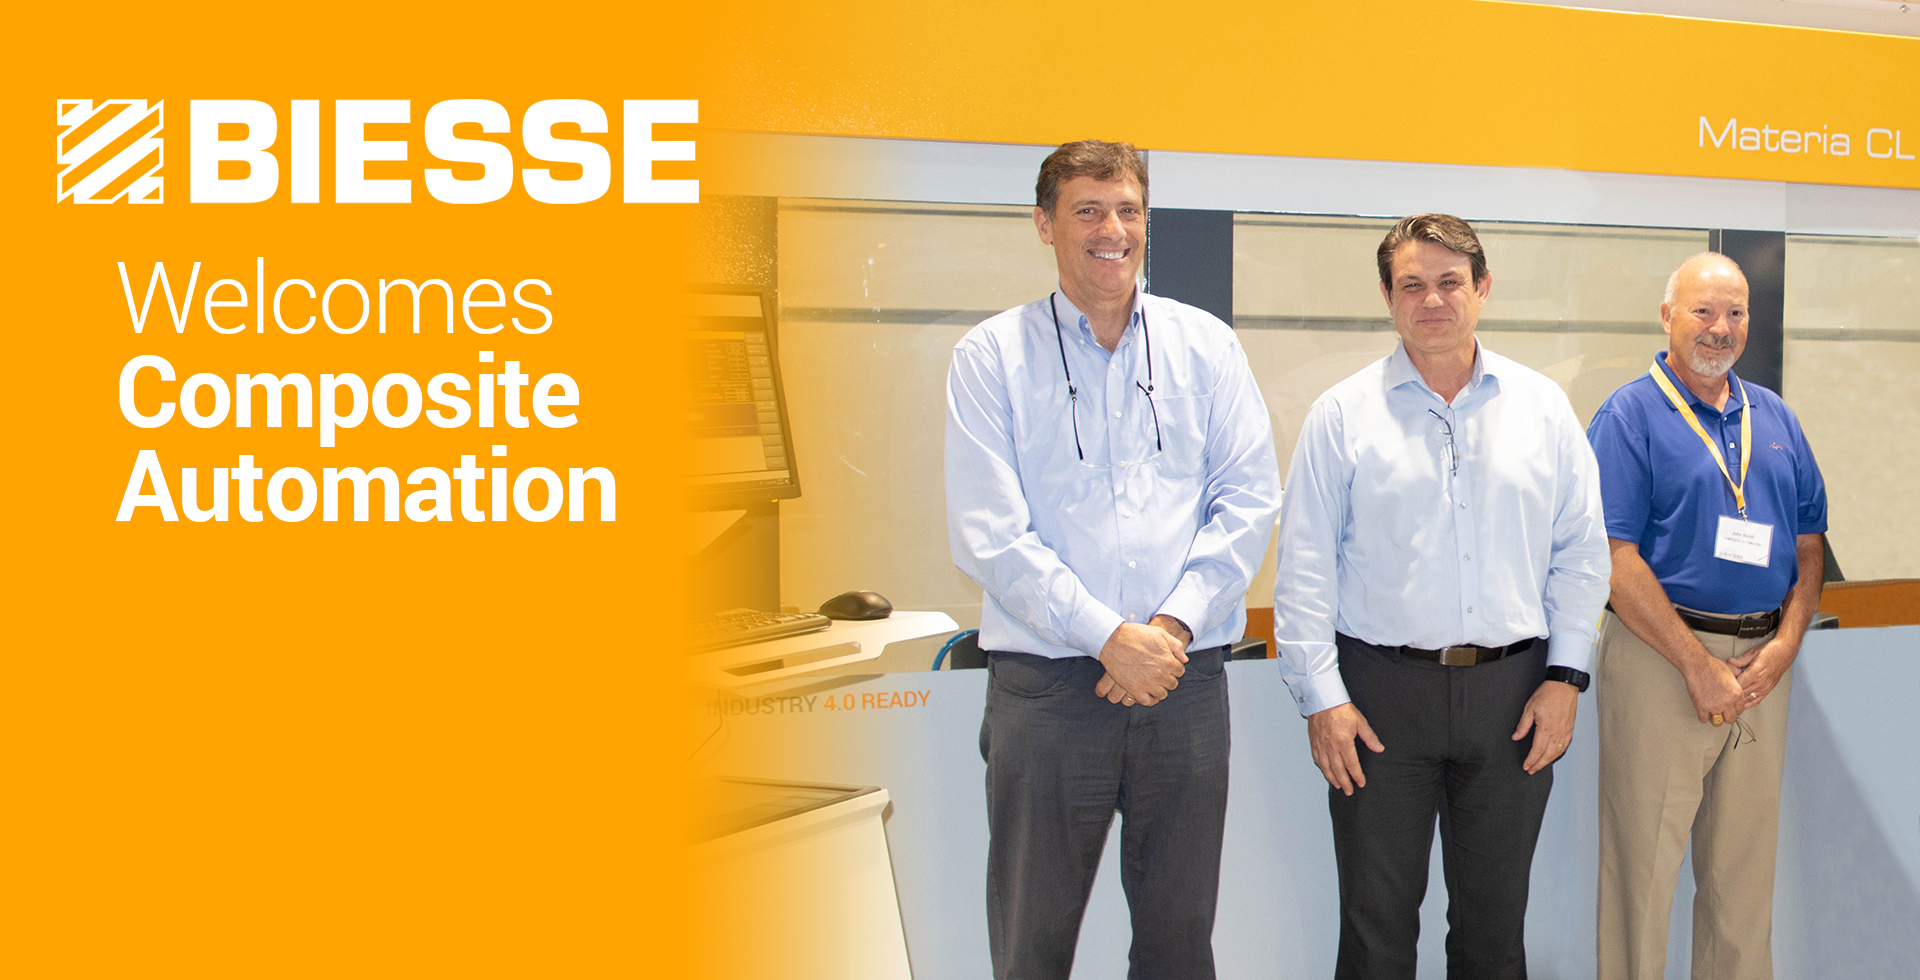 Biesse Welcomes Composite Automation